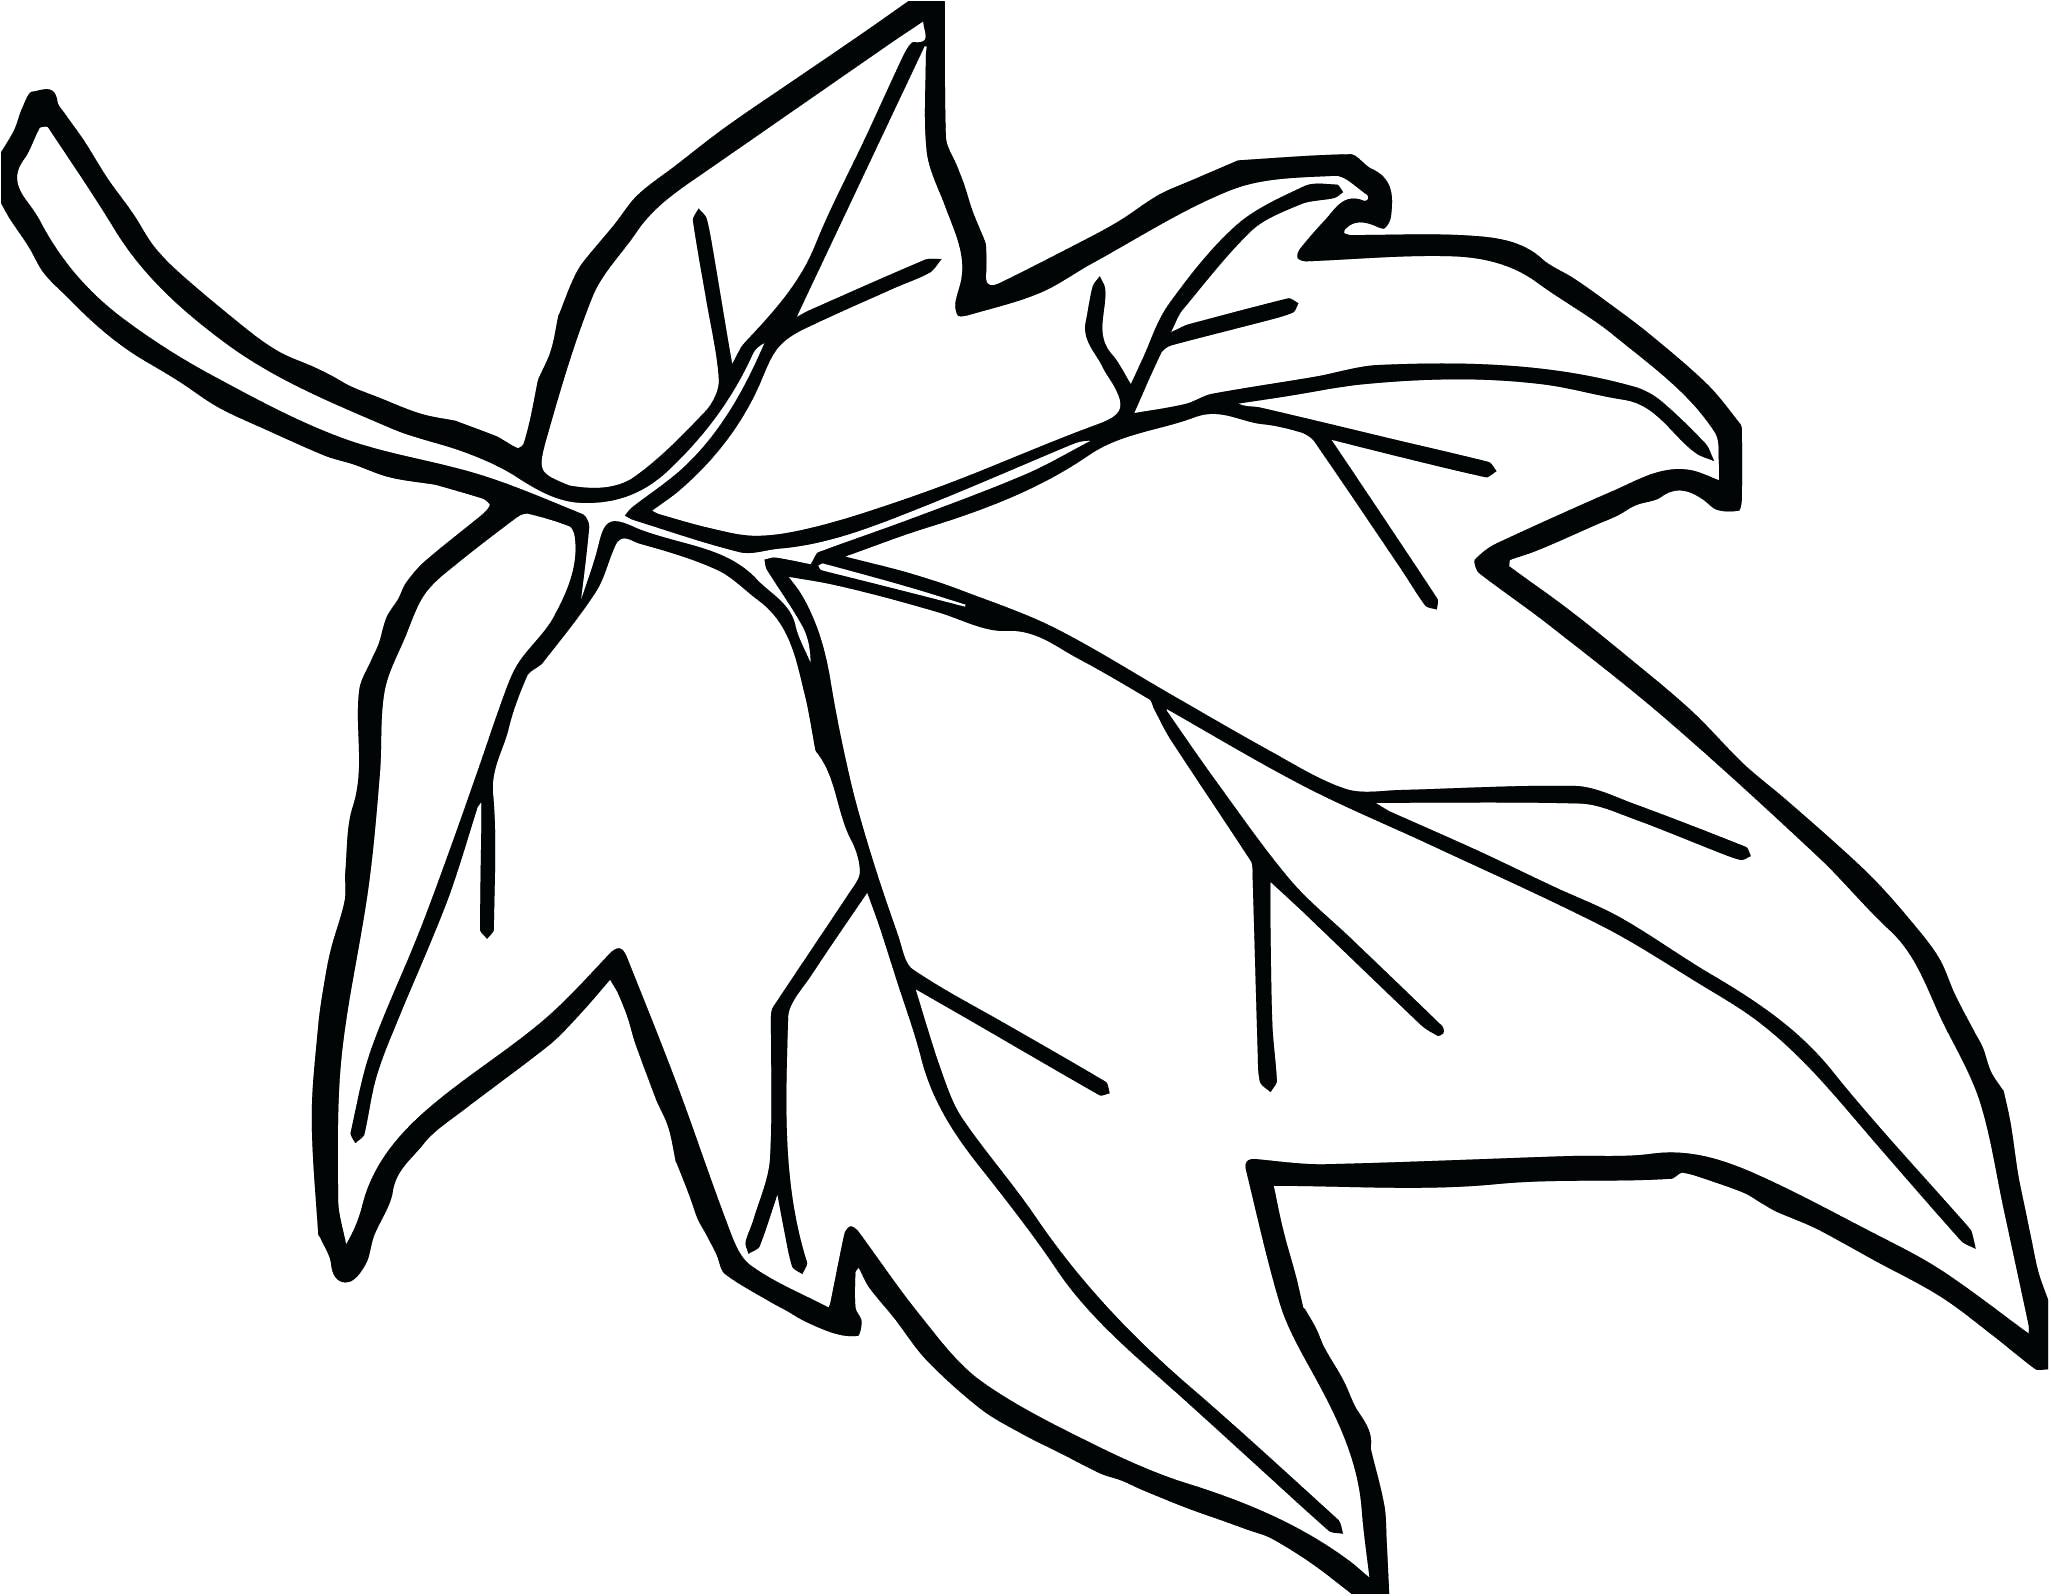 Coloring Pages : Coloring Pages Free Autumn Leaves Printable Fall.